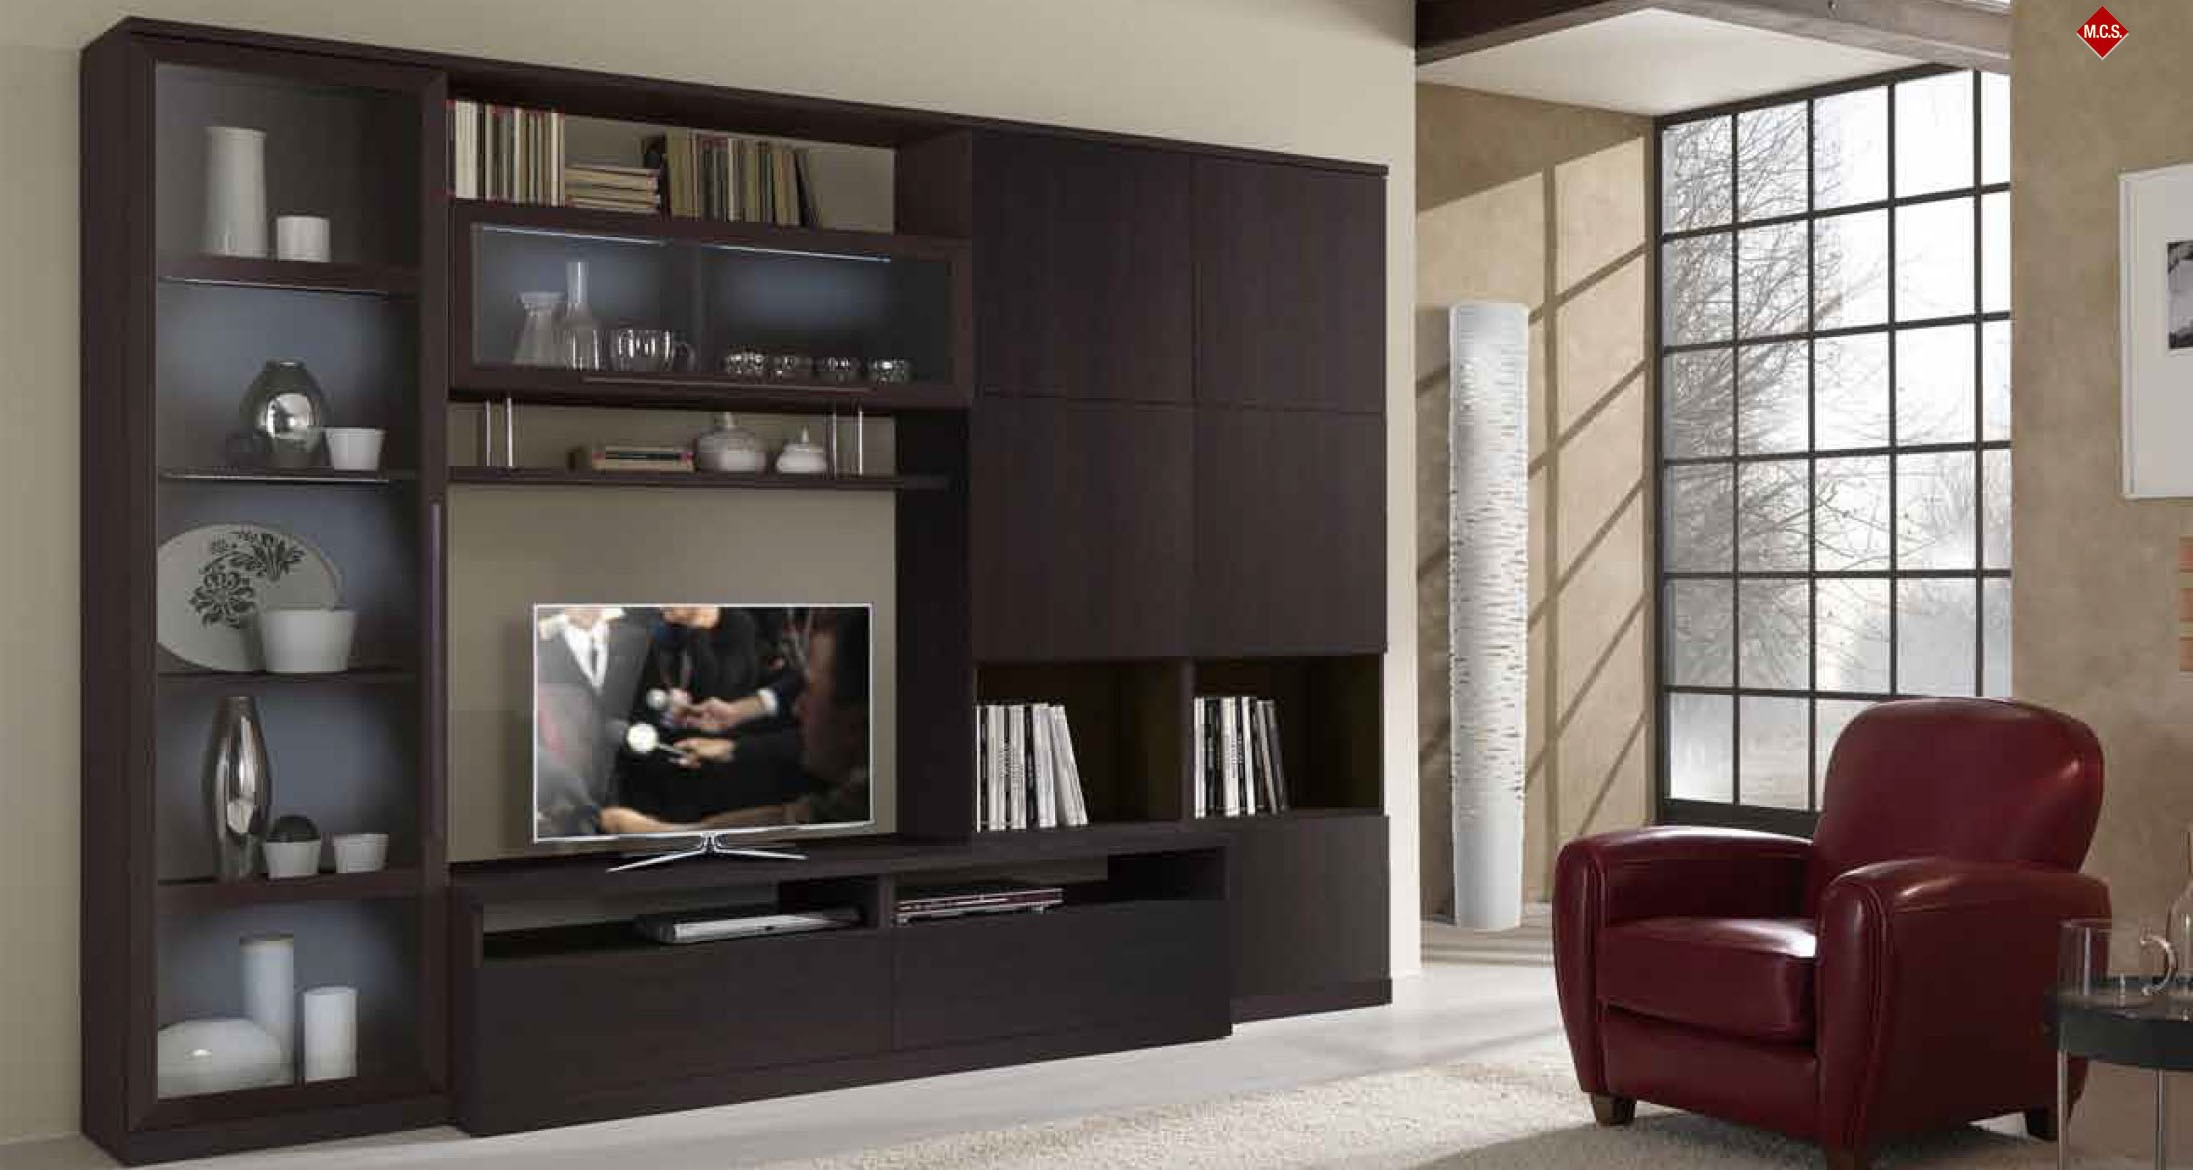 20 modern tv unit design ideas for bedroom living room Wall units for living room design